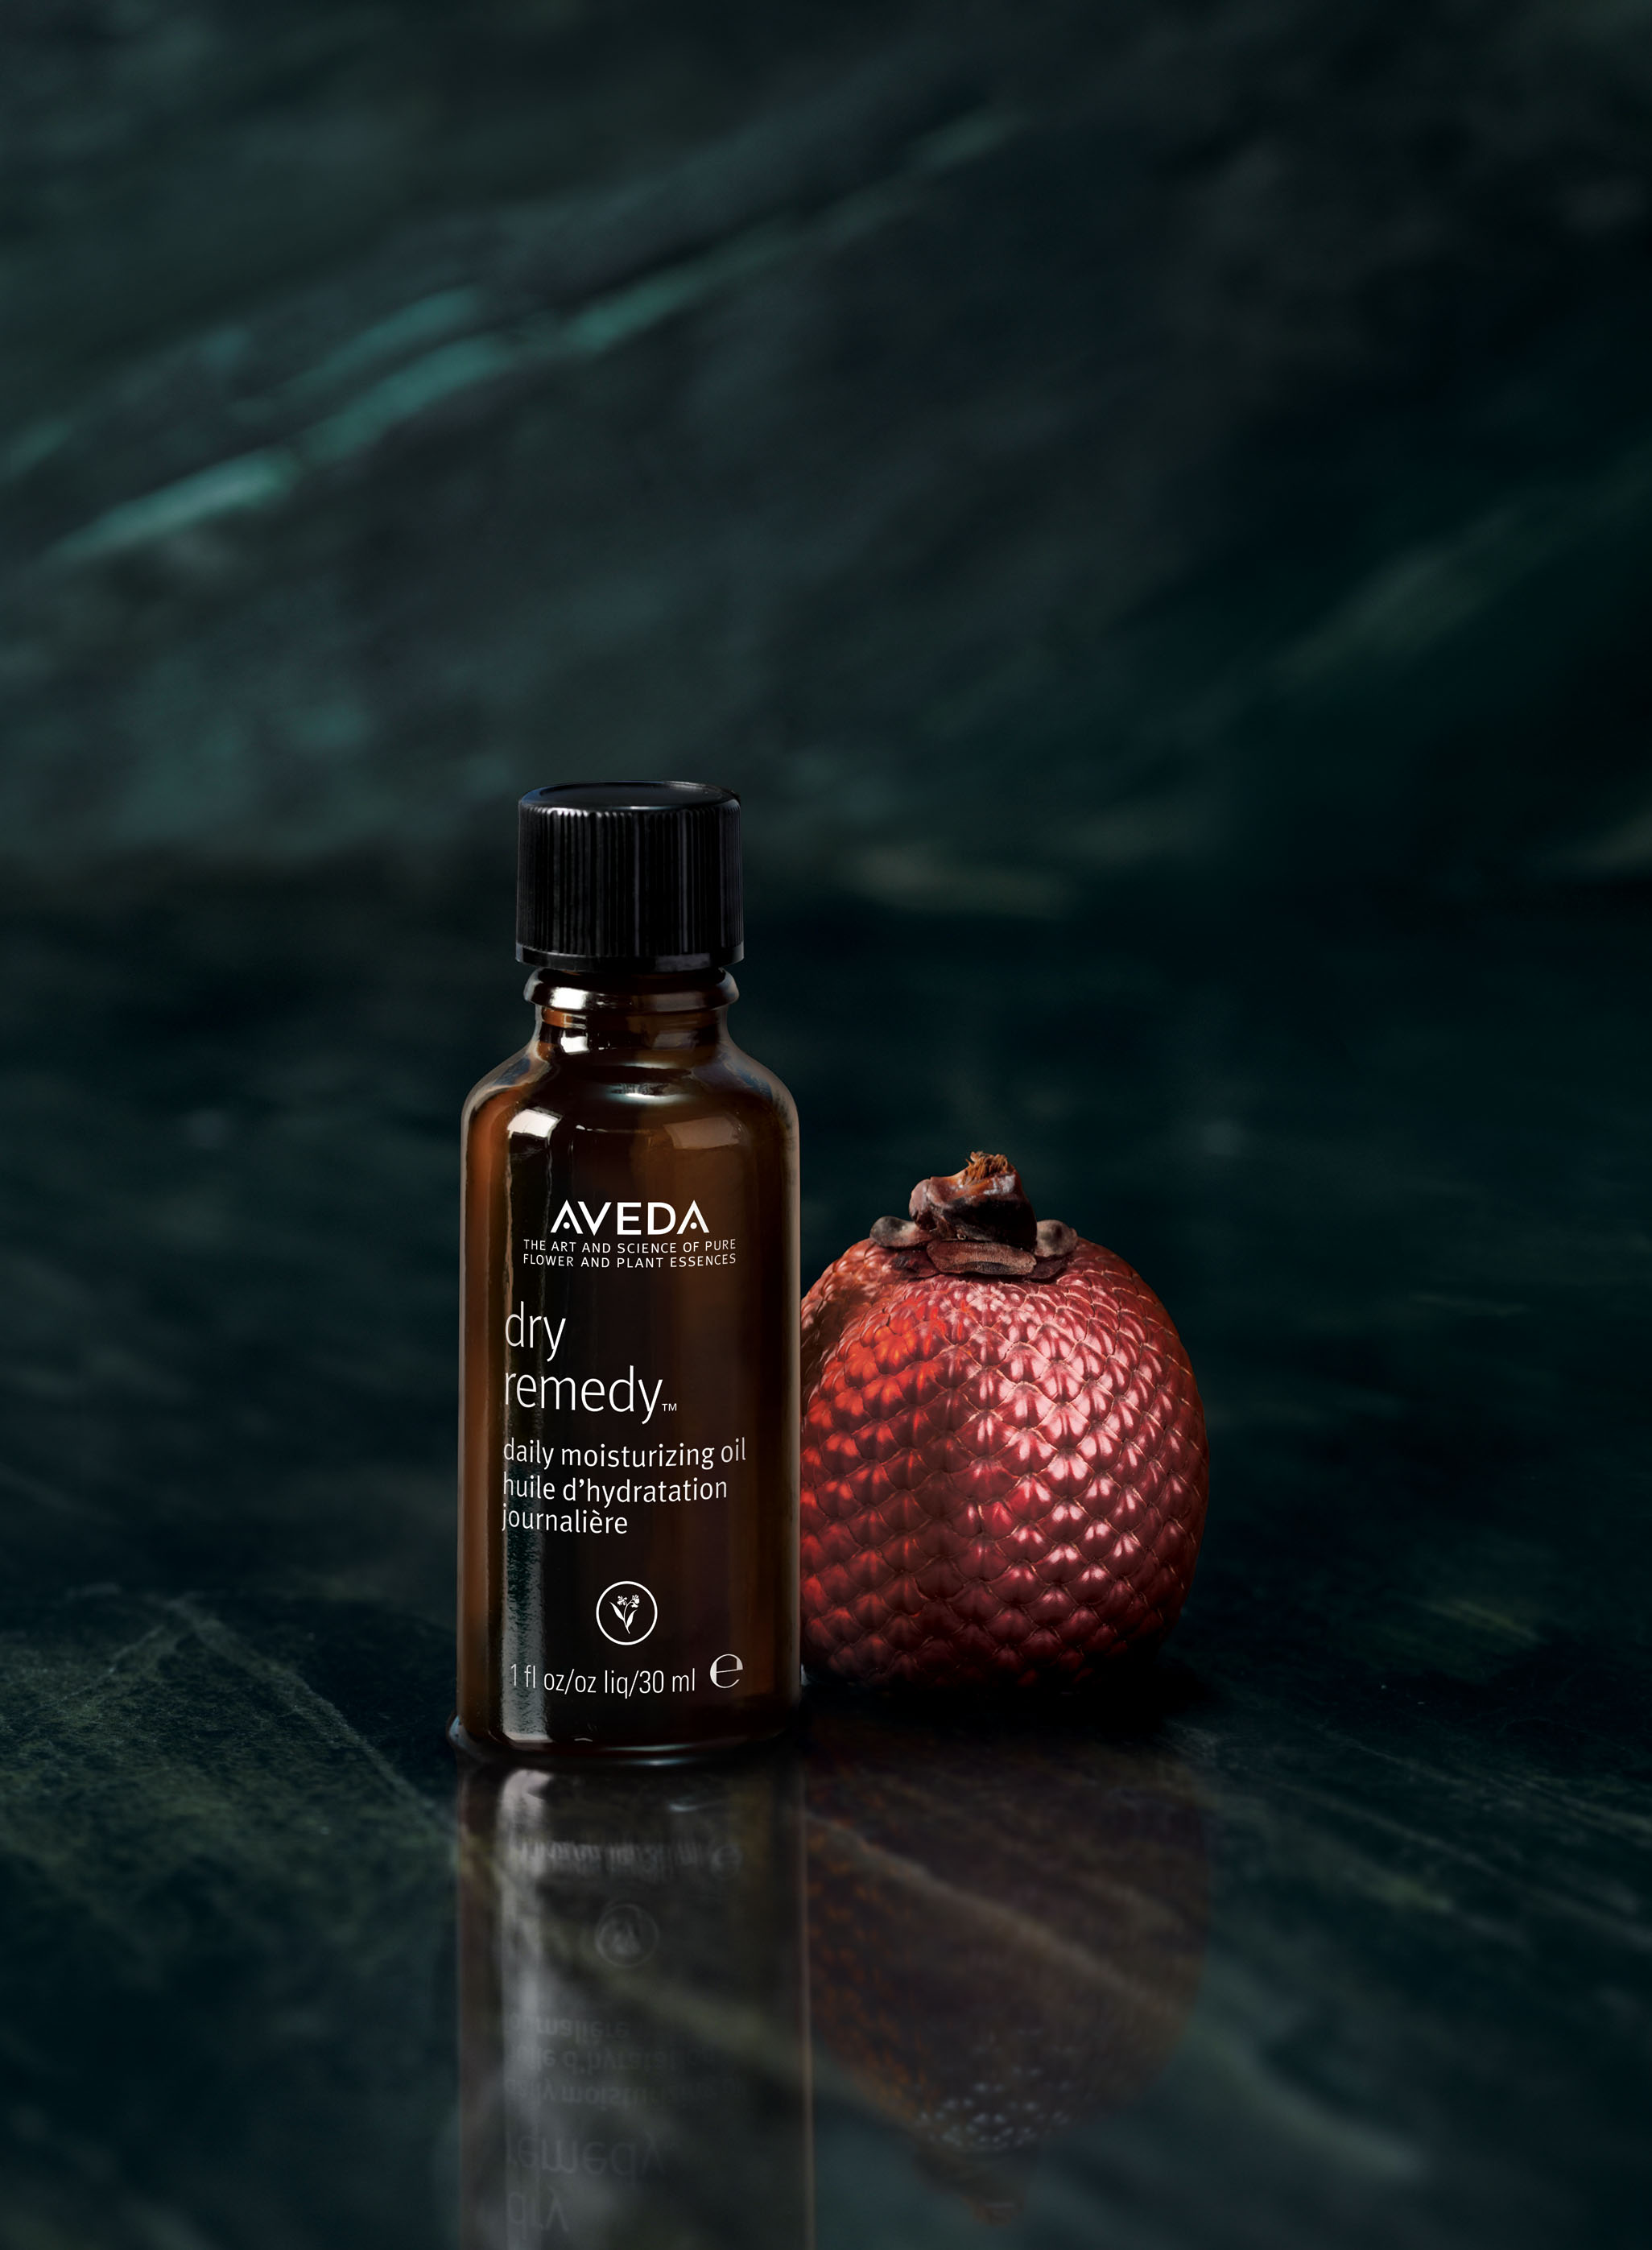 Dry_Remedy_Daily_Moisturizing_Oil_stylized_product_image.jpg